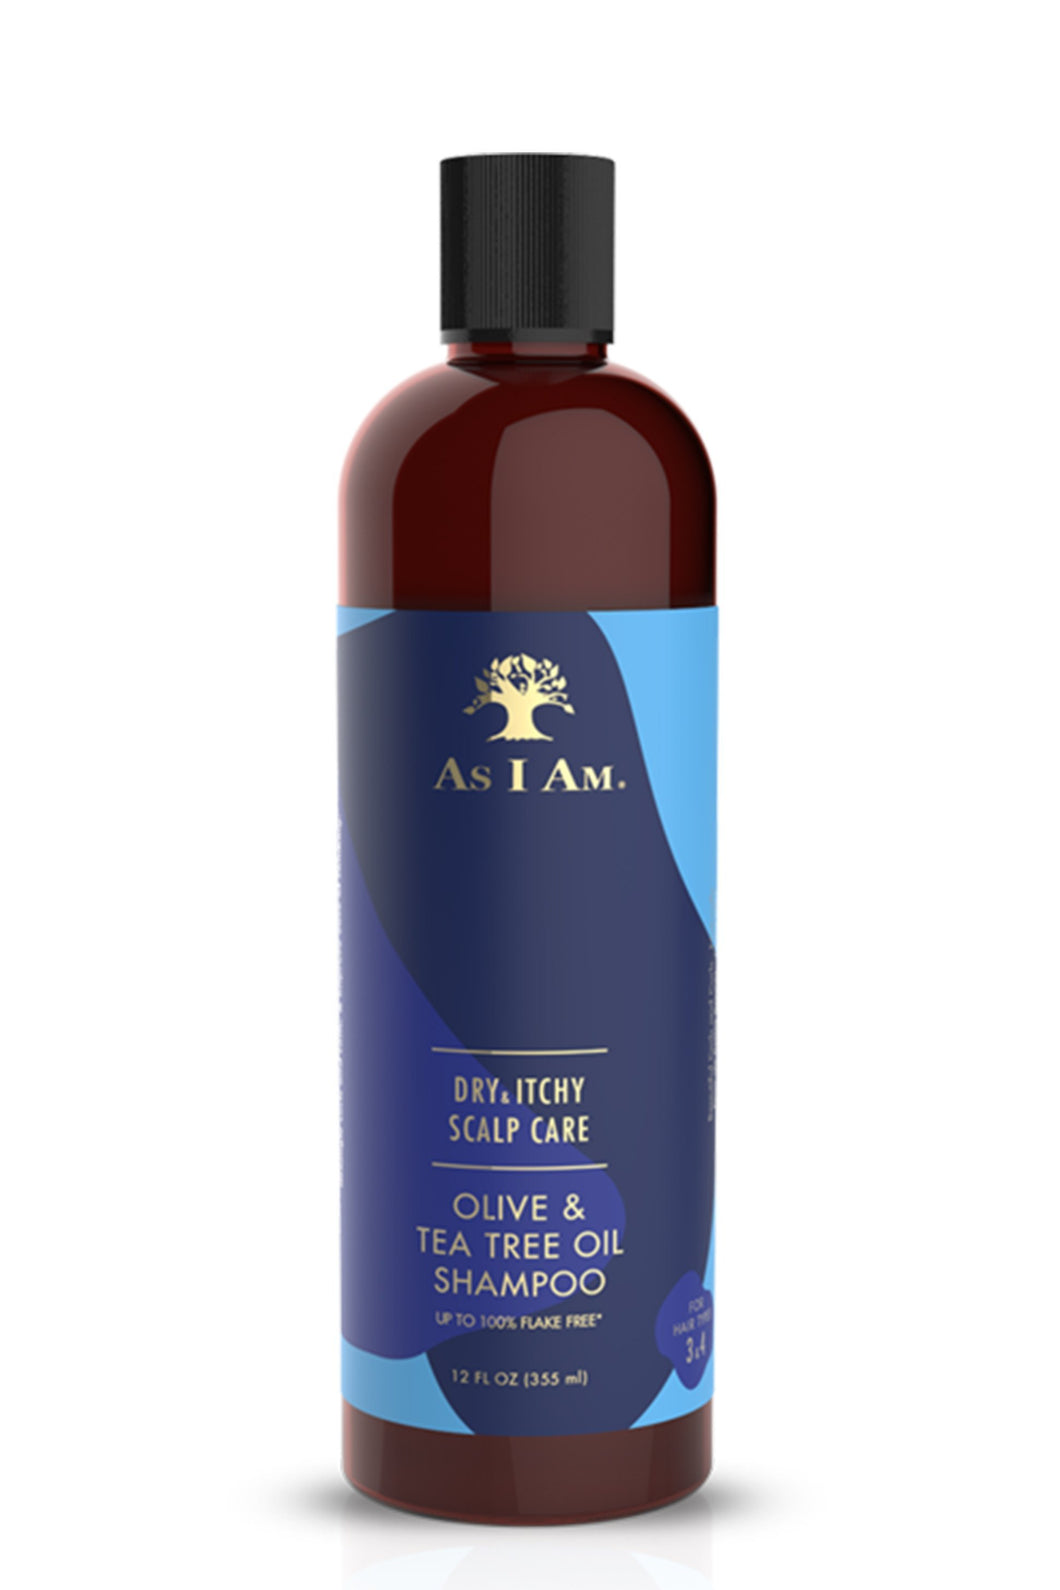 AS I AM Dry and Itchy Scalp Care Olive and Tea Tree Oil Shampoo (355ml)